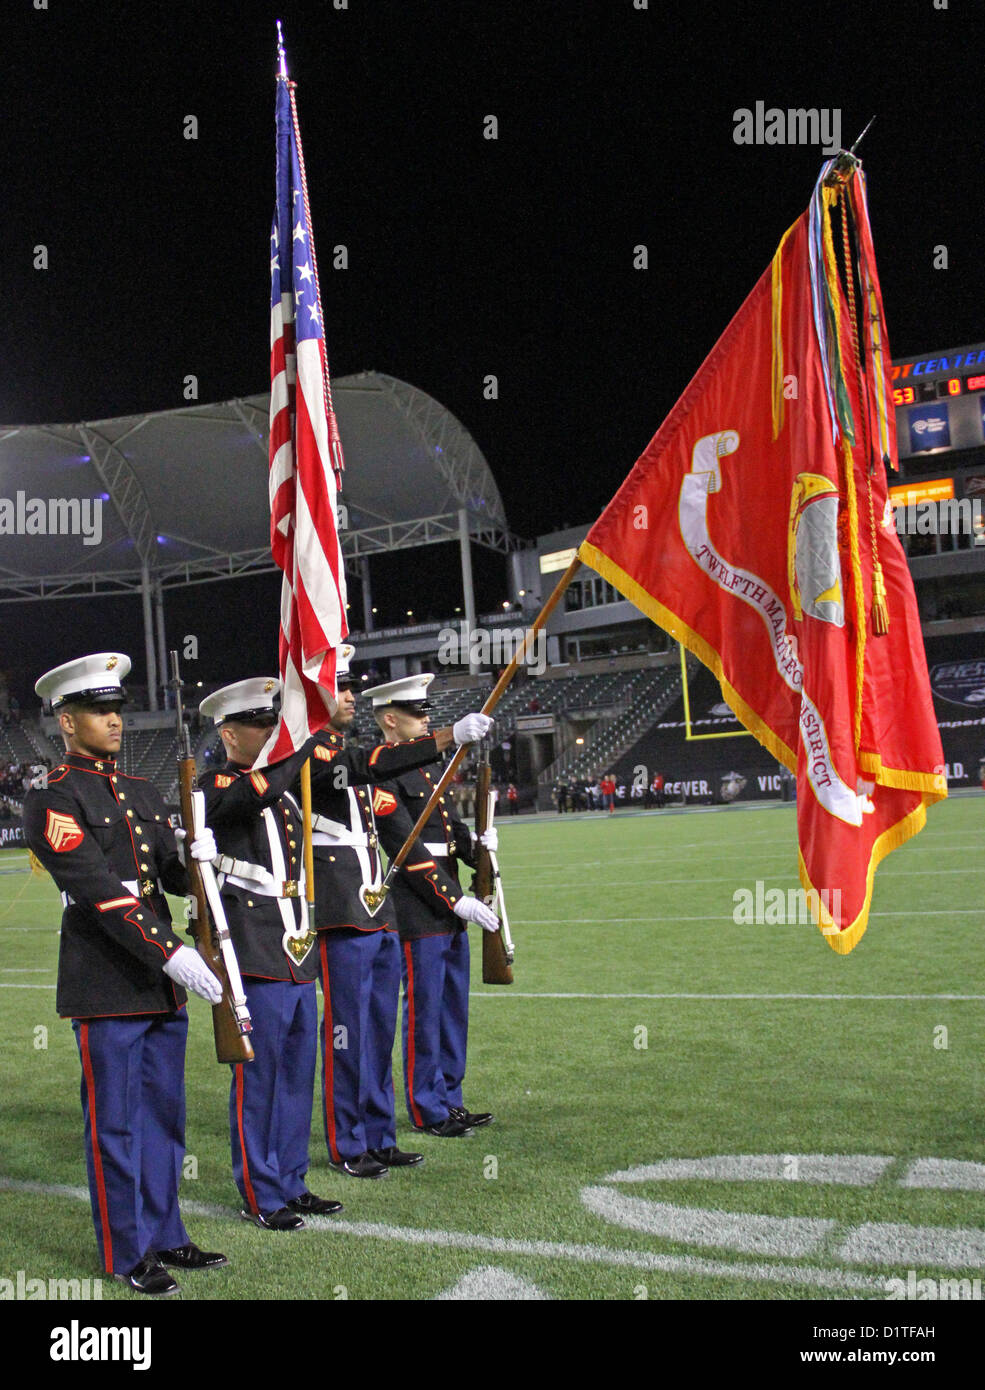 The 12th Marine Corps District's color guard presents the United